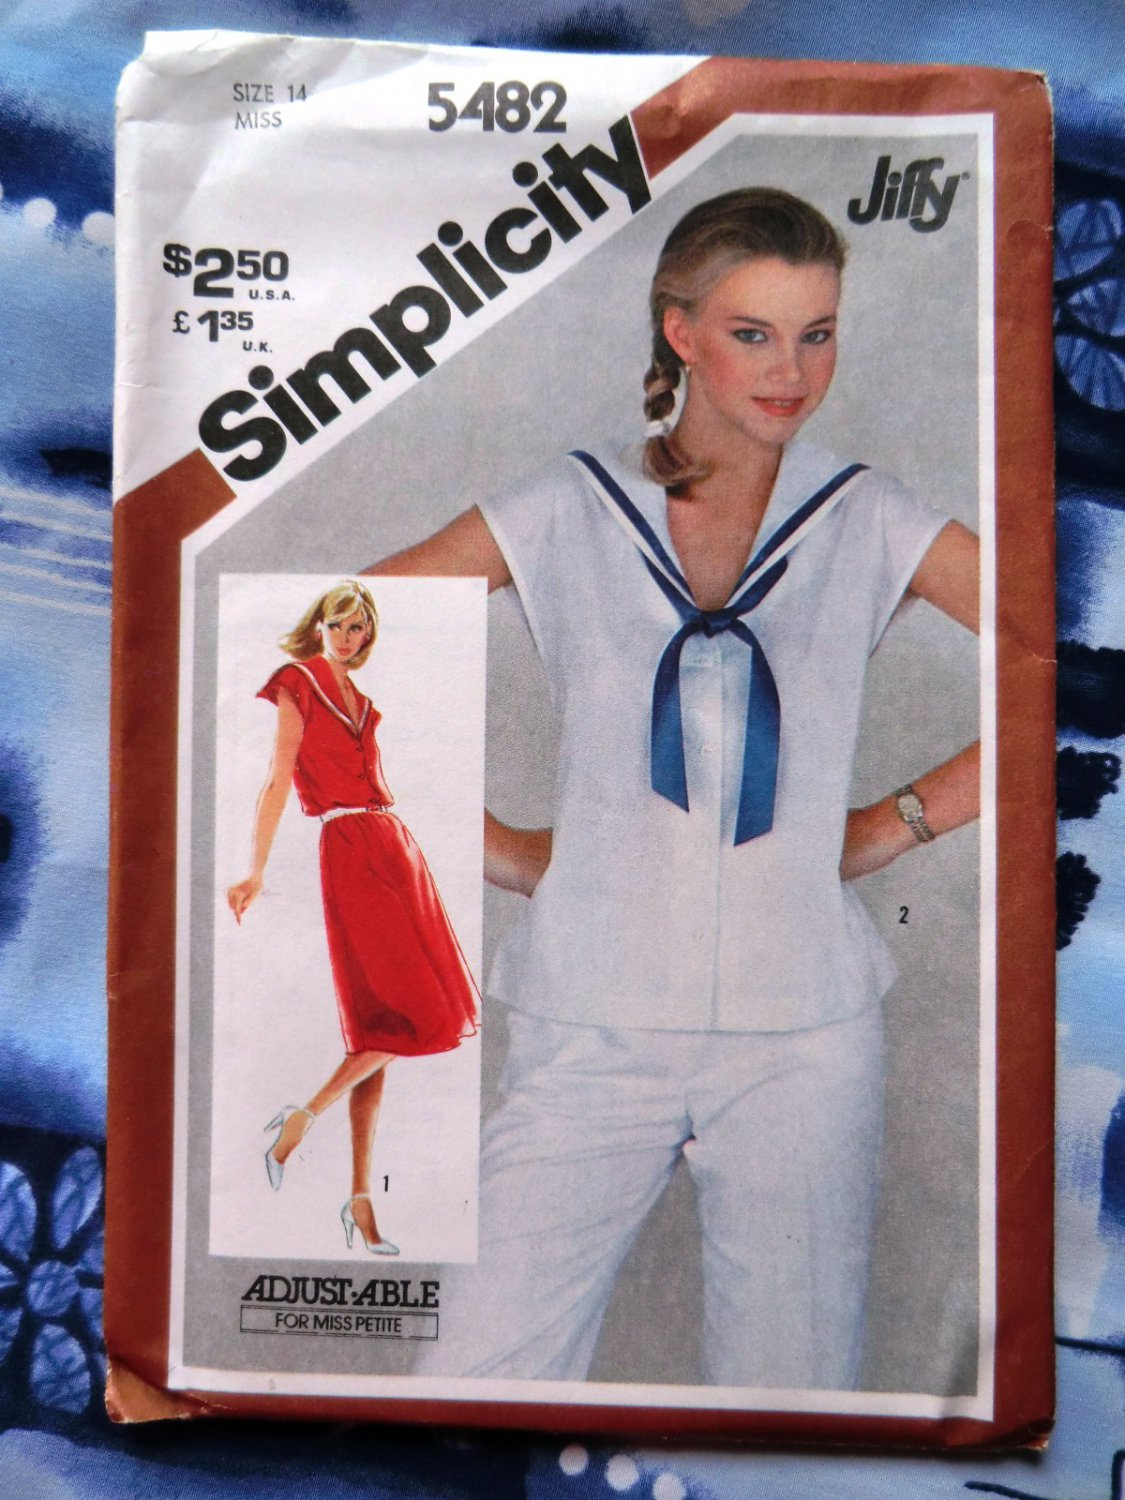 HOLD! Simplicity Pattern # 5482 UNCUT Misses Sailor Top Pull-over Dress Size 14